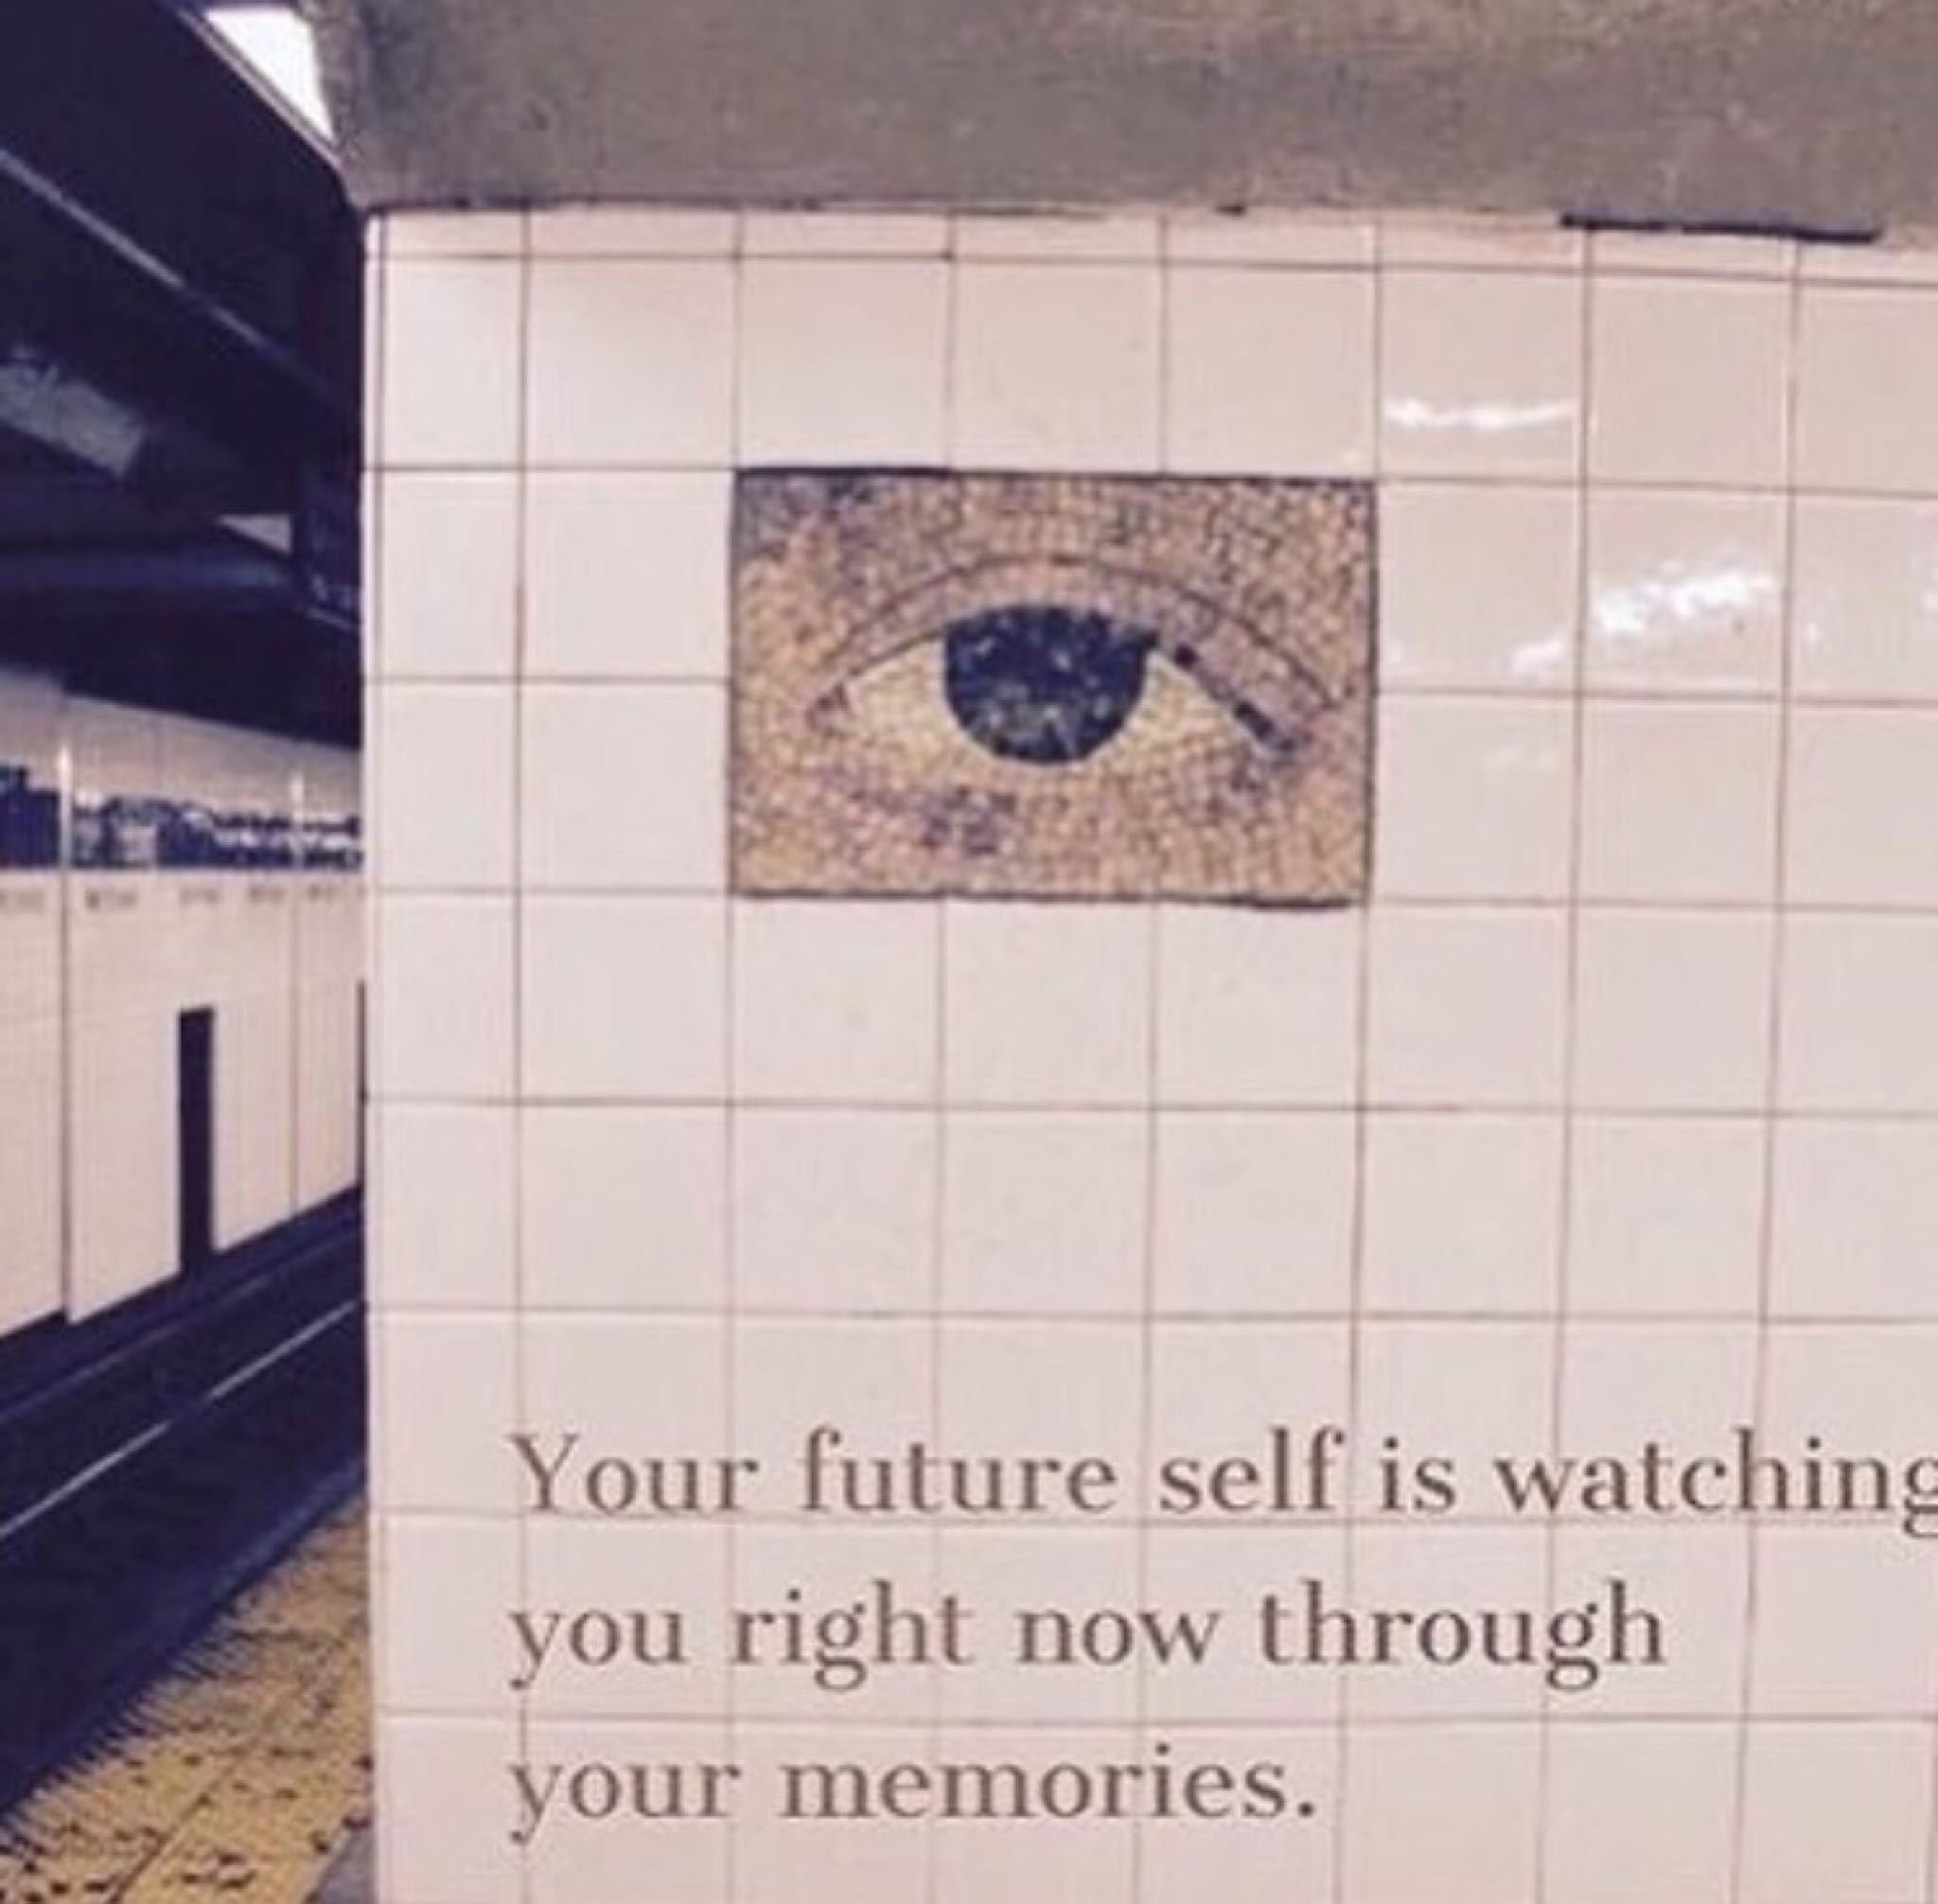 [Image] Its not the quality of the picture that matter; but the message.